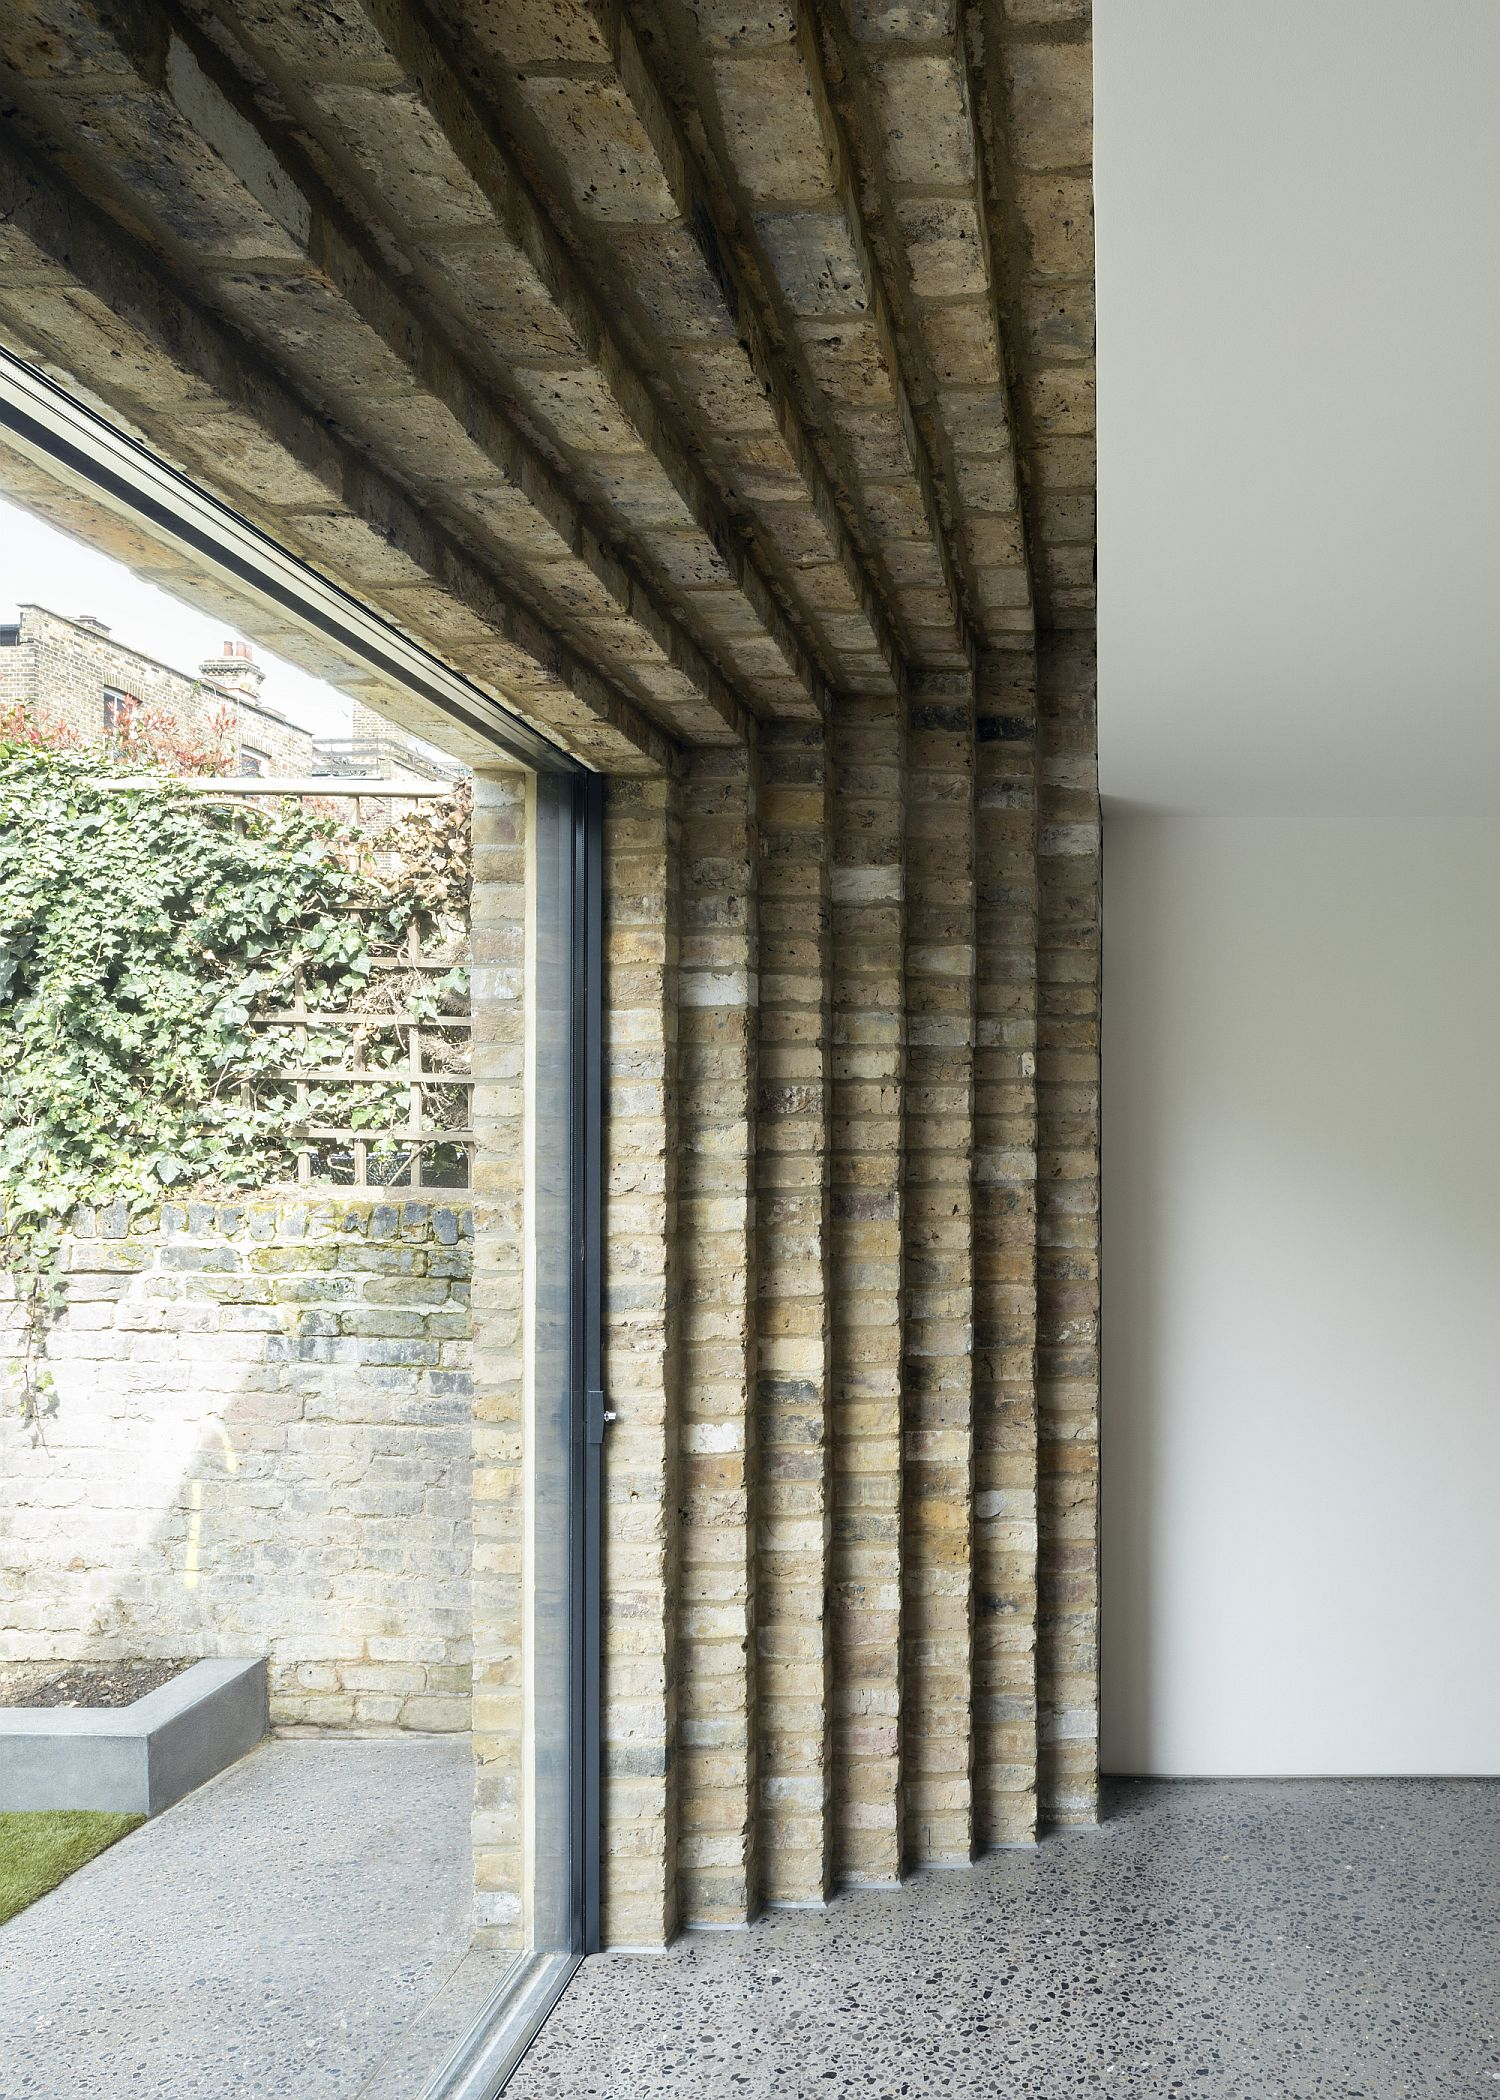 Step-styled brick wall extension of the London Residence